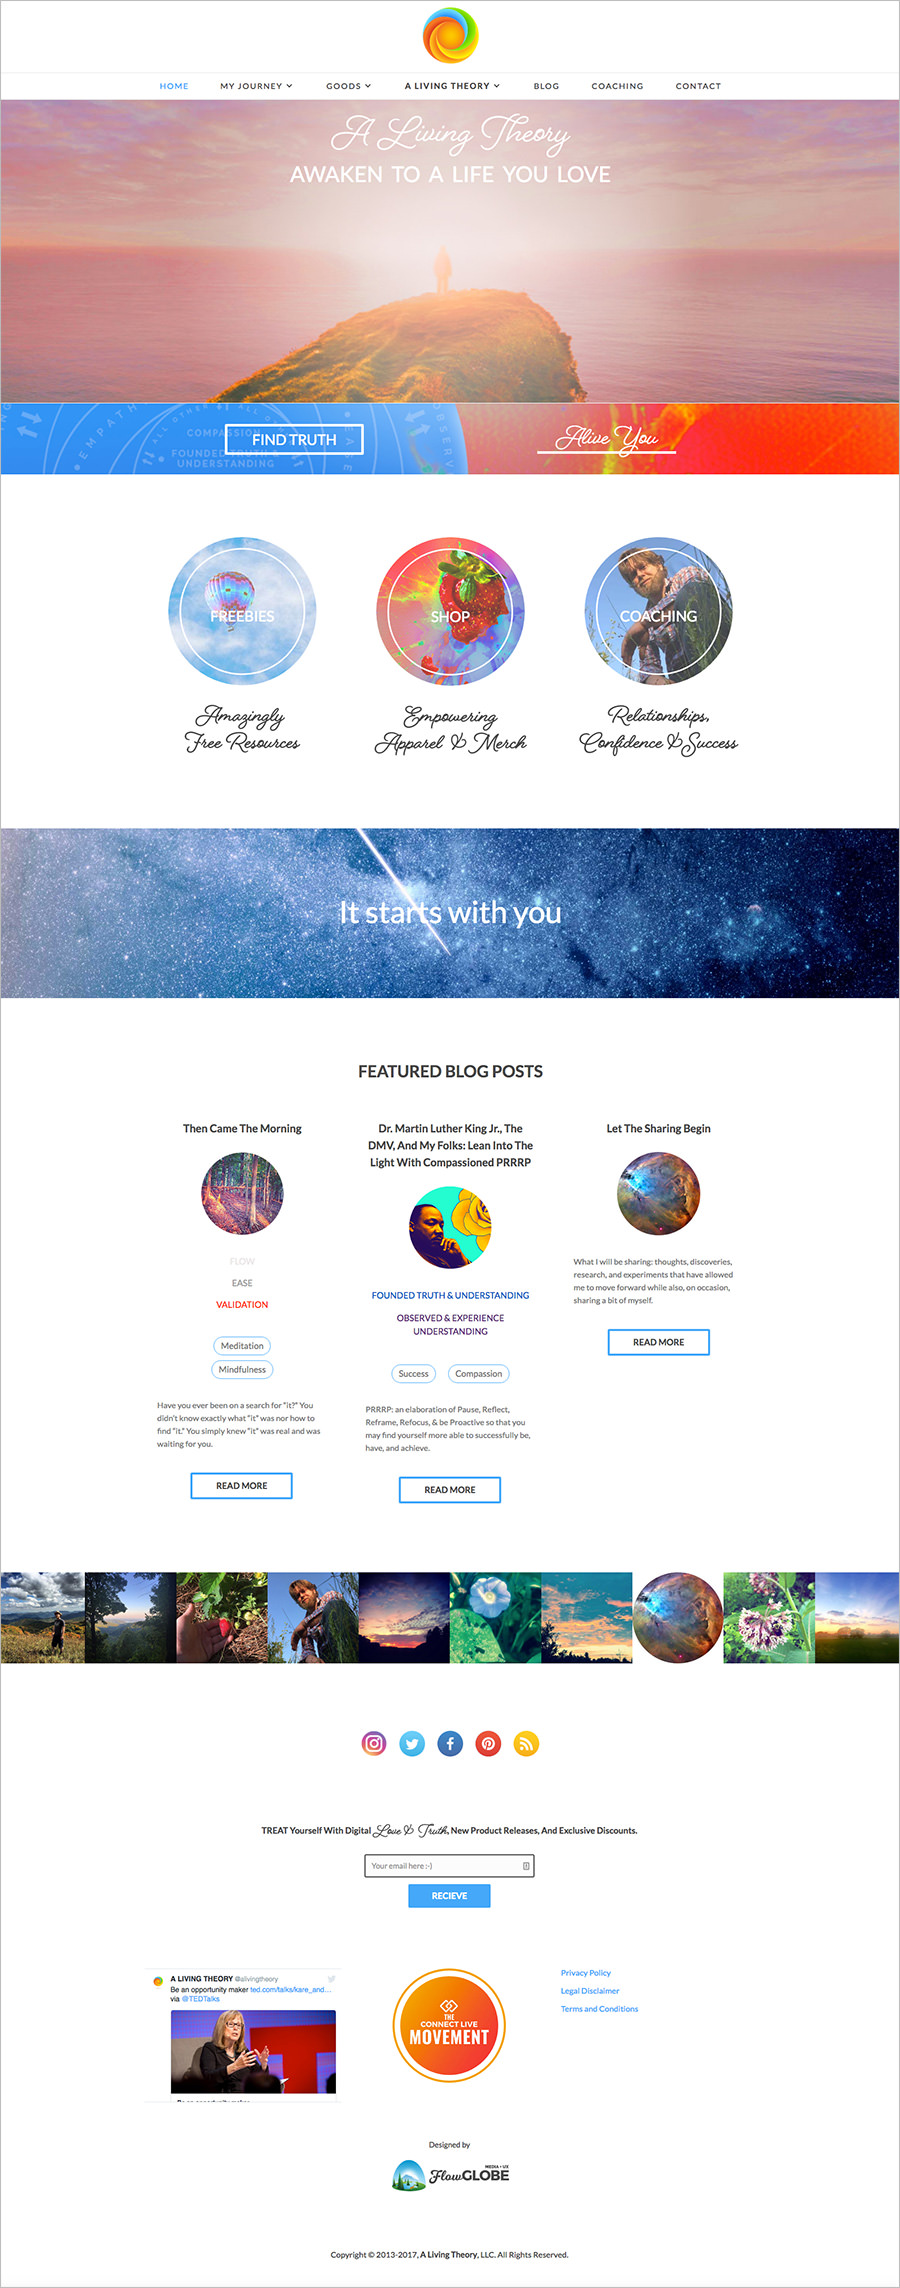 A Living Theory website